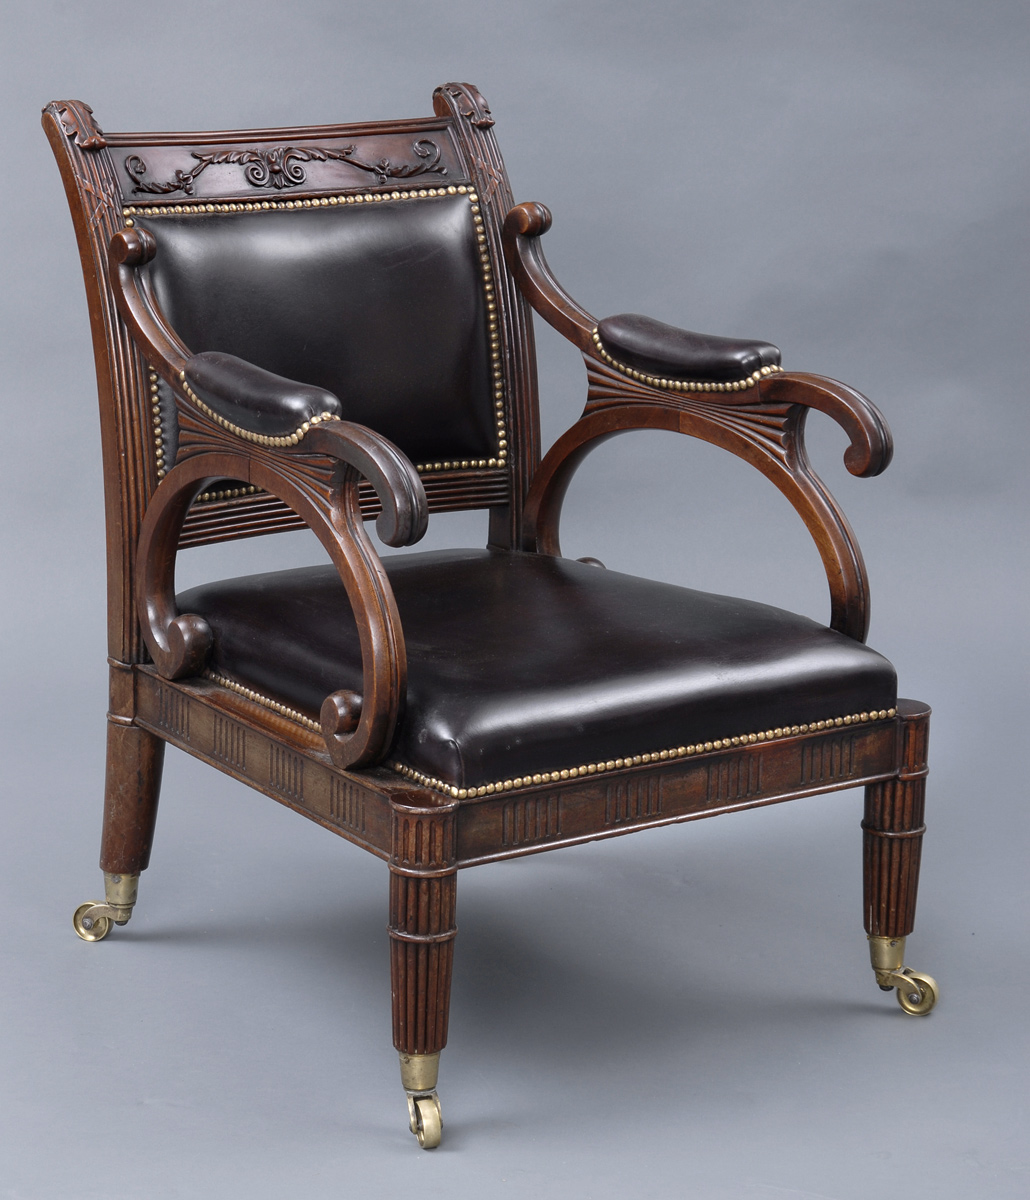 Leather Arm Chairs Antique Library Chairs English Regency Mahogany